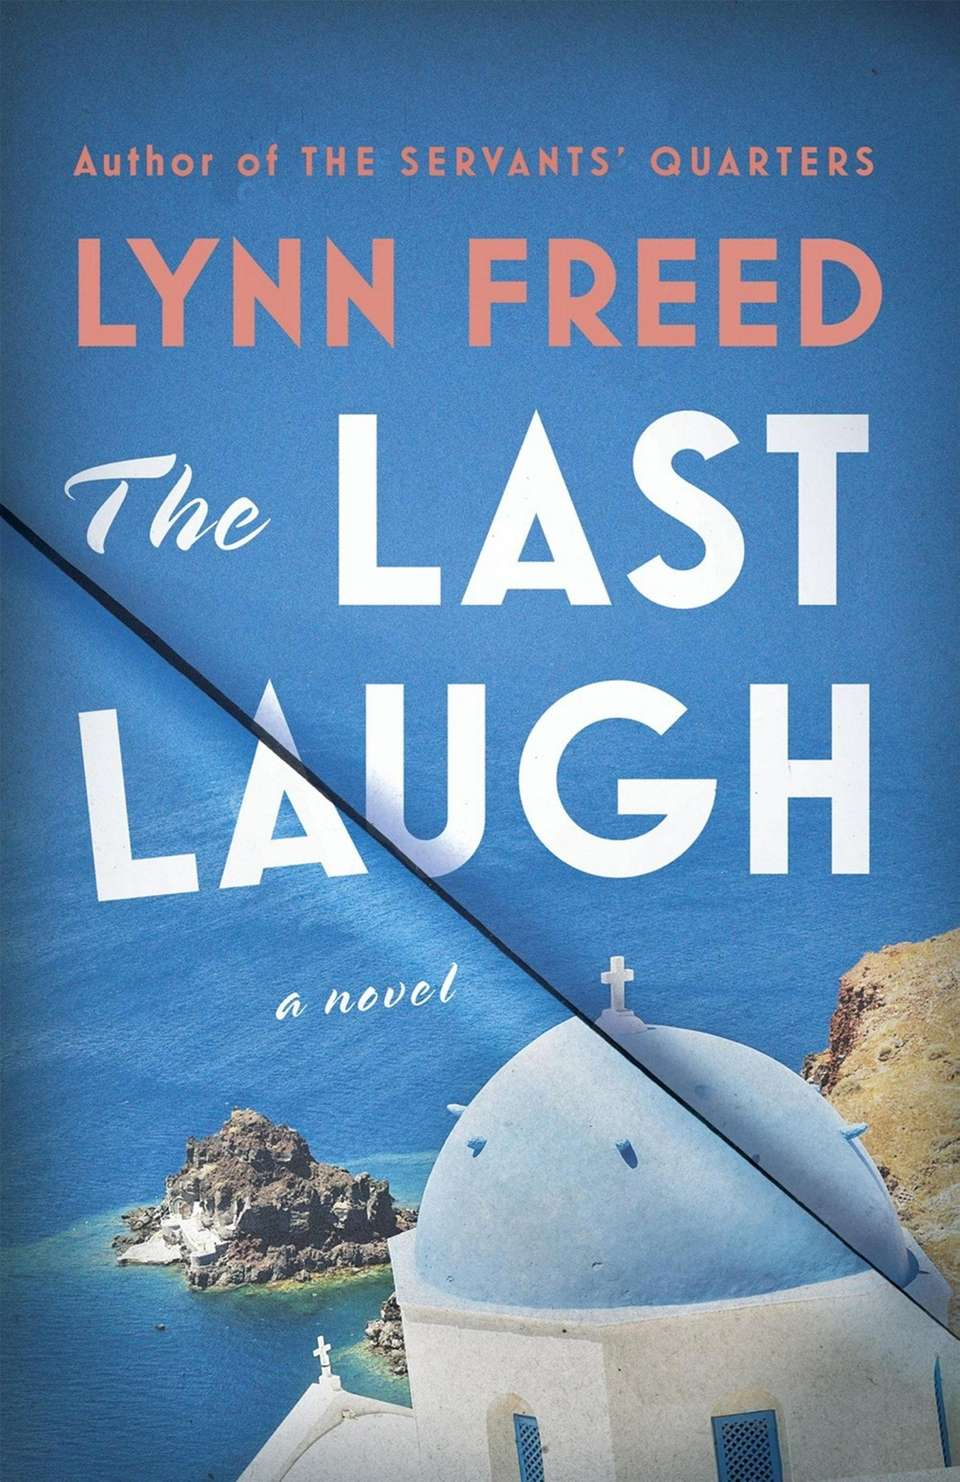 THE LAST LAUGH, Lynn Freed. Ideally, a book